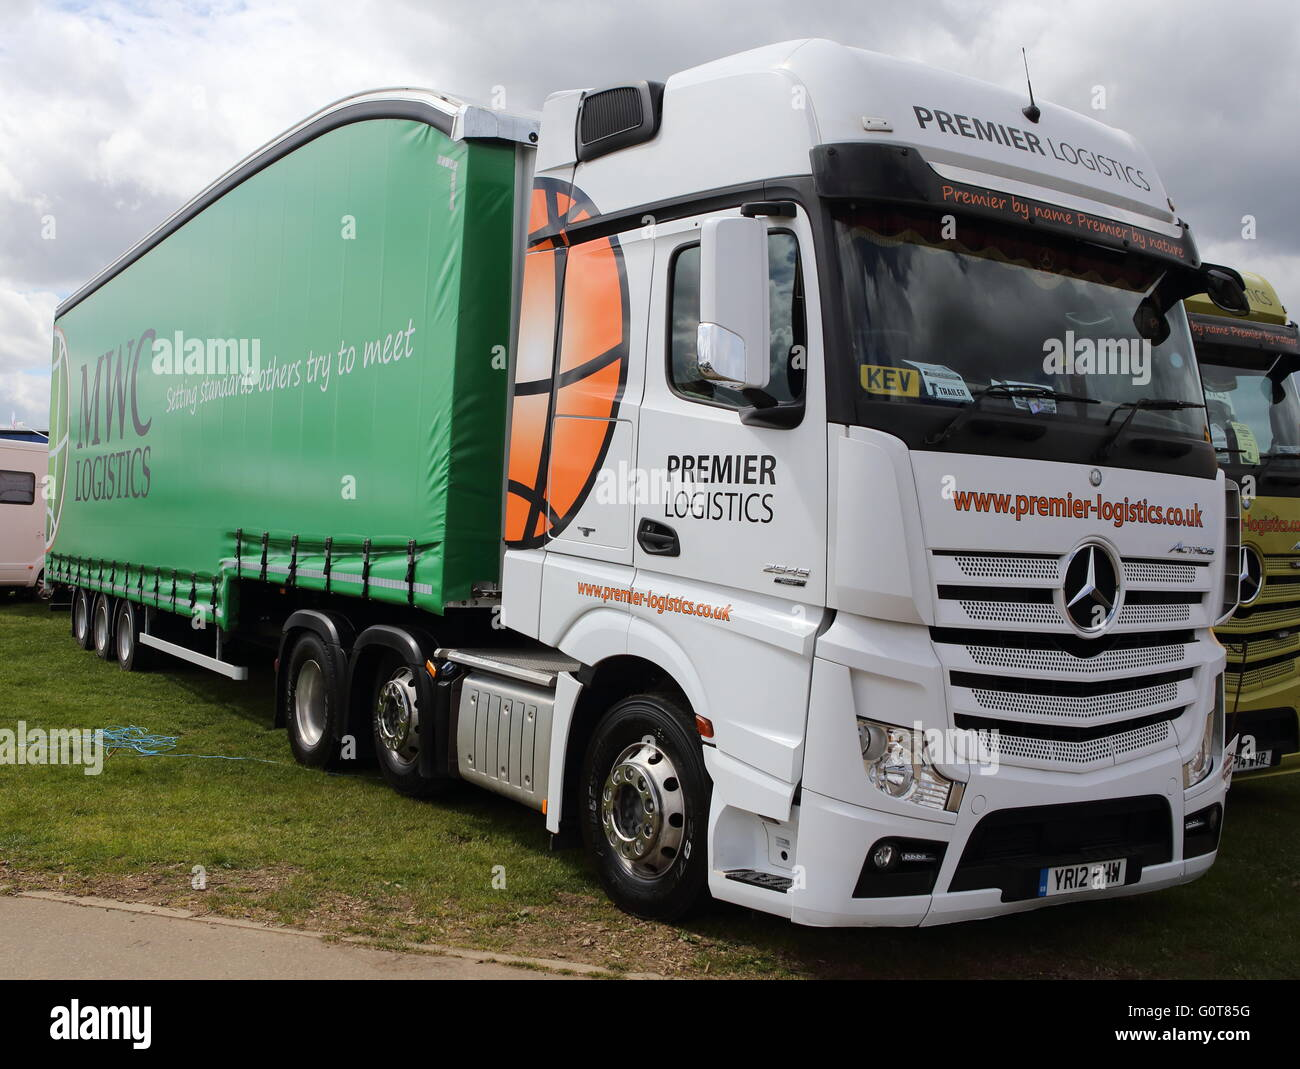 Mecedes Actros Premier Logistics - HGv Articulated Lorry - Stock Image